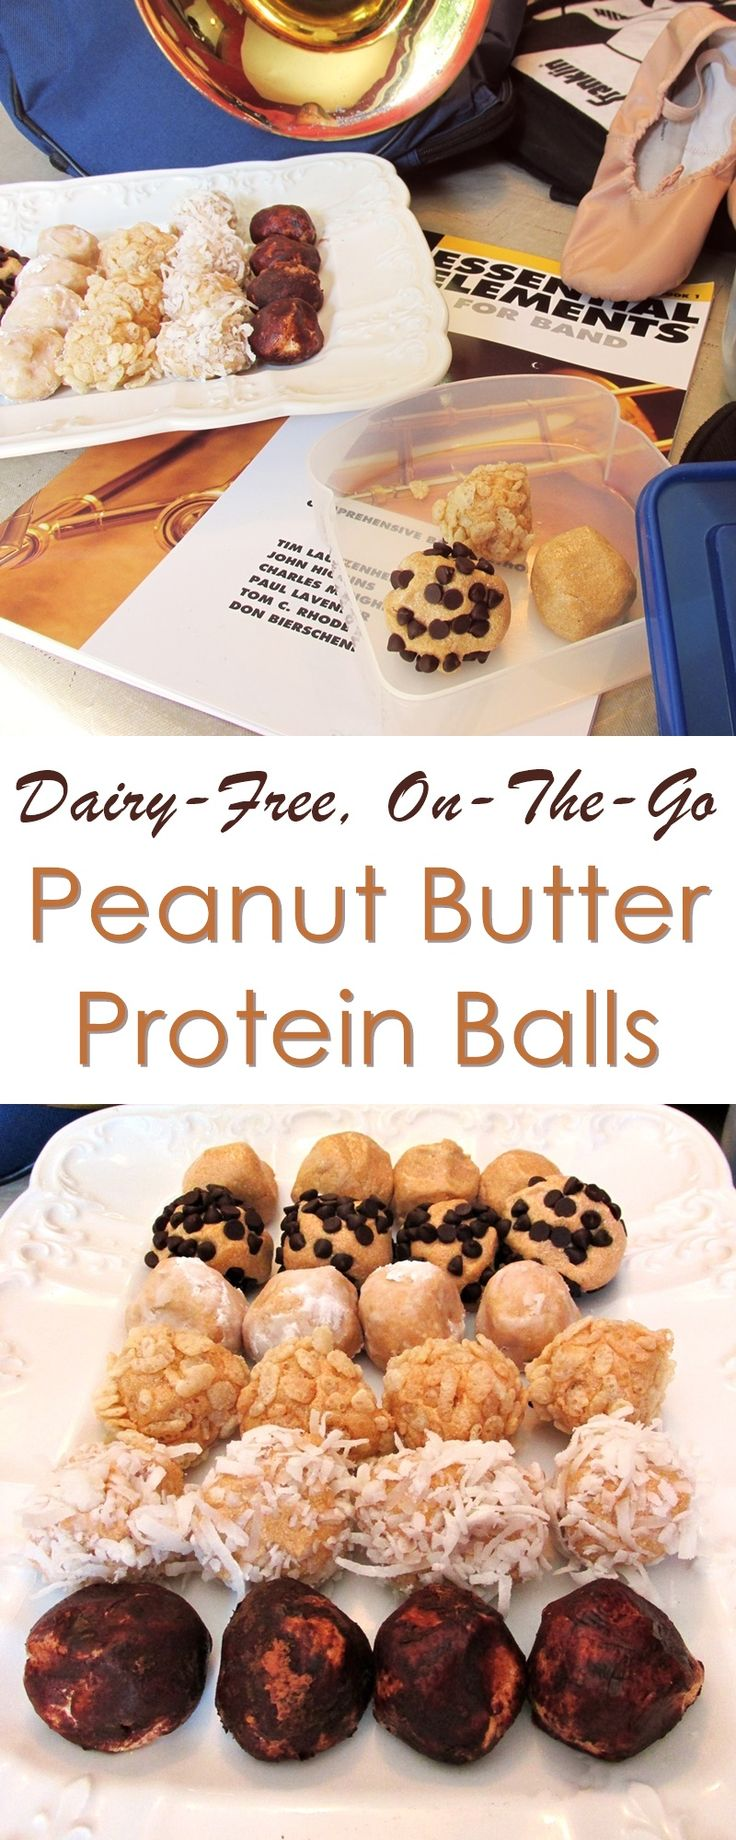 Dairy-Free Peanut Butter Protein Balls - an easy energy recipe for busy days! (vegan, gluten-free & includes peanut-free option!)